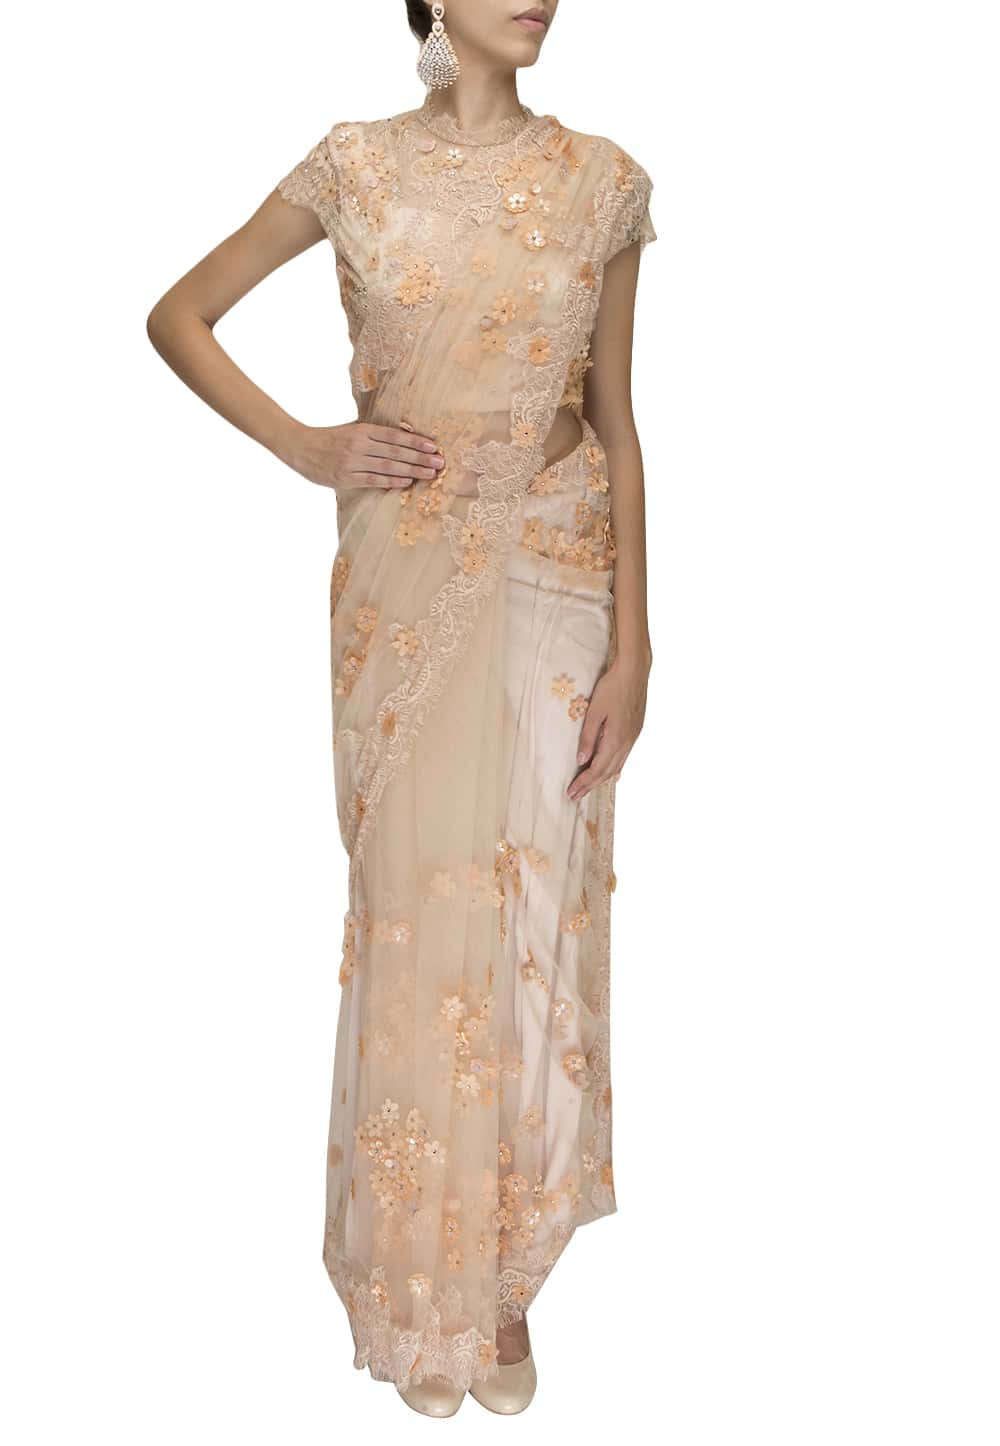 Peach chantilly lace embroideed saree available only at ibfw aloadofball Gallery